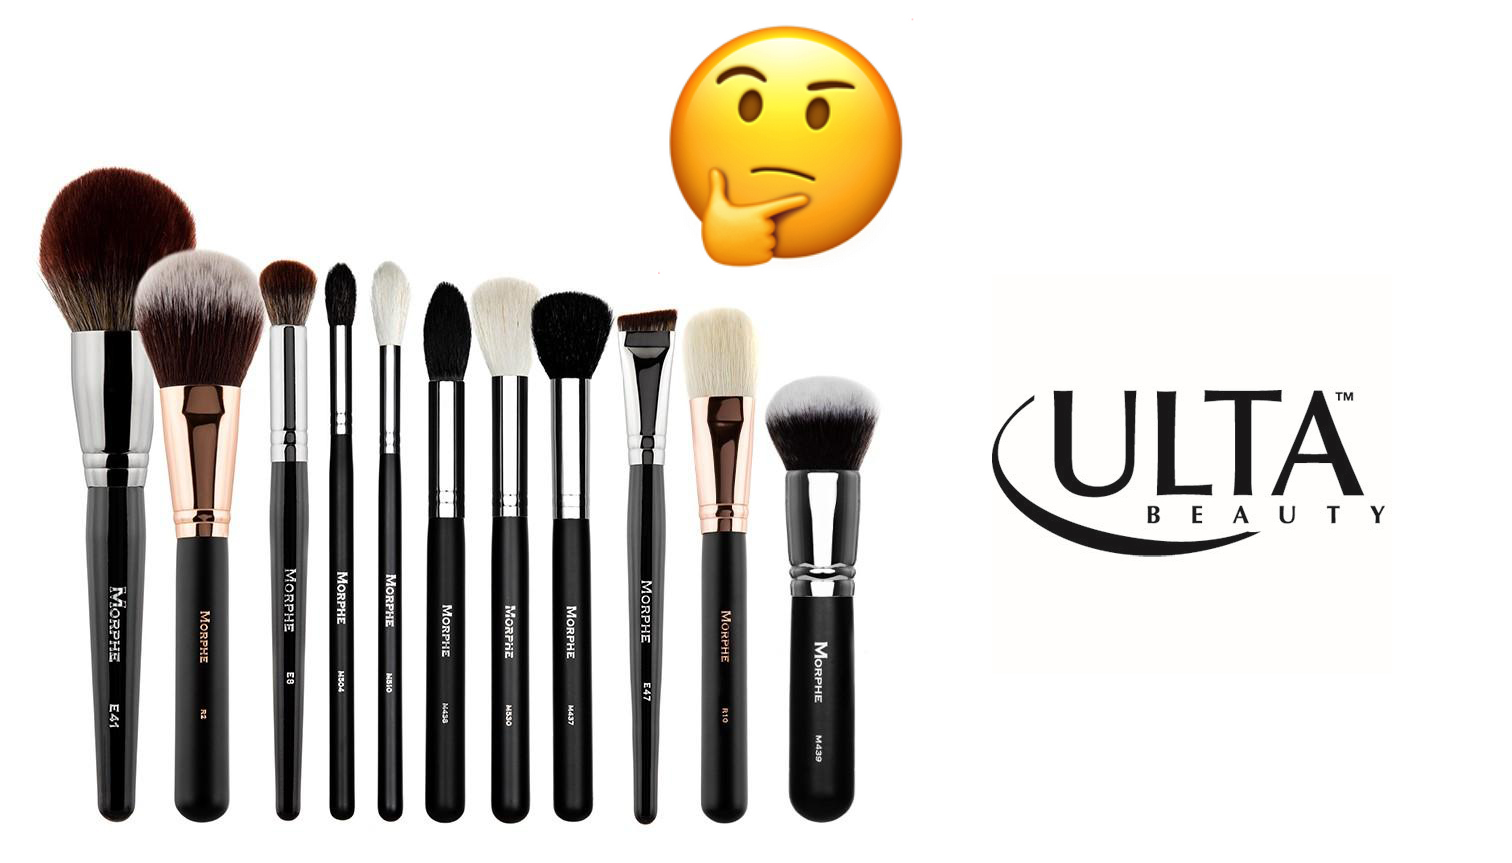 Is Morphe Brushes Coming to Ulta Beauty Stores October 2017? (UPDATE: Morphe Is Coming to Ulta!)